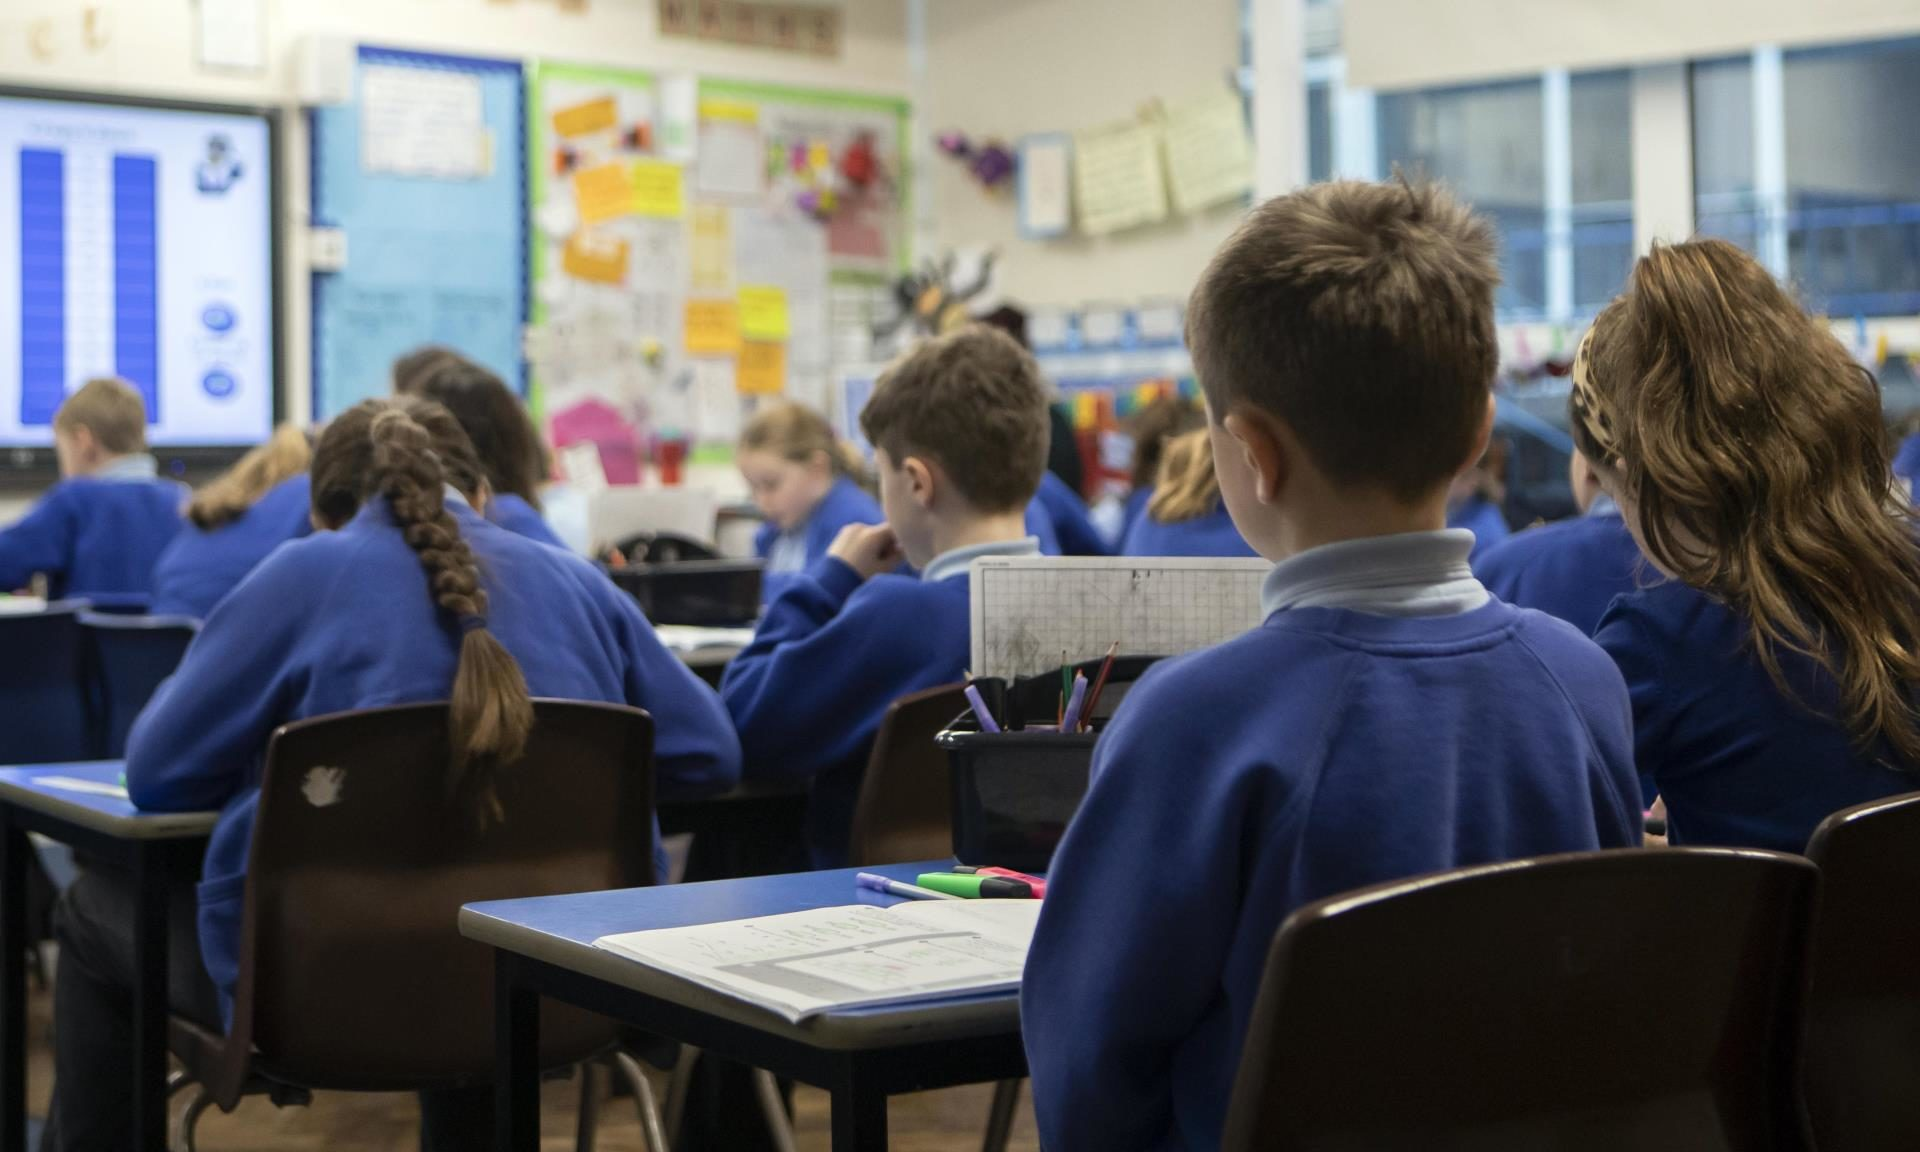 Pupils will be back in class from next Wednesday.